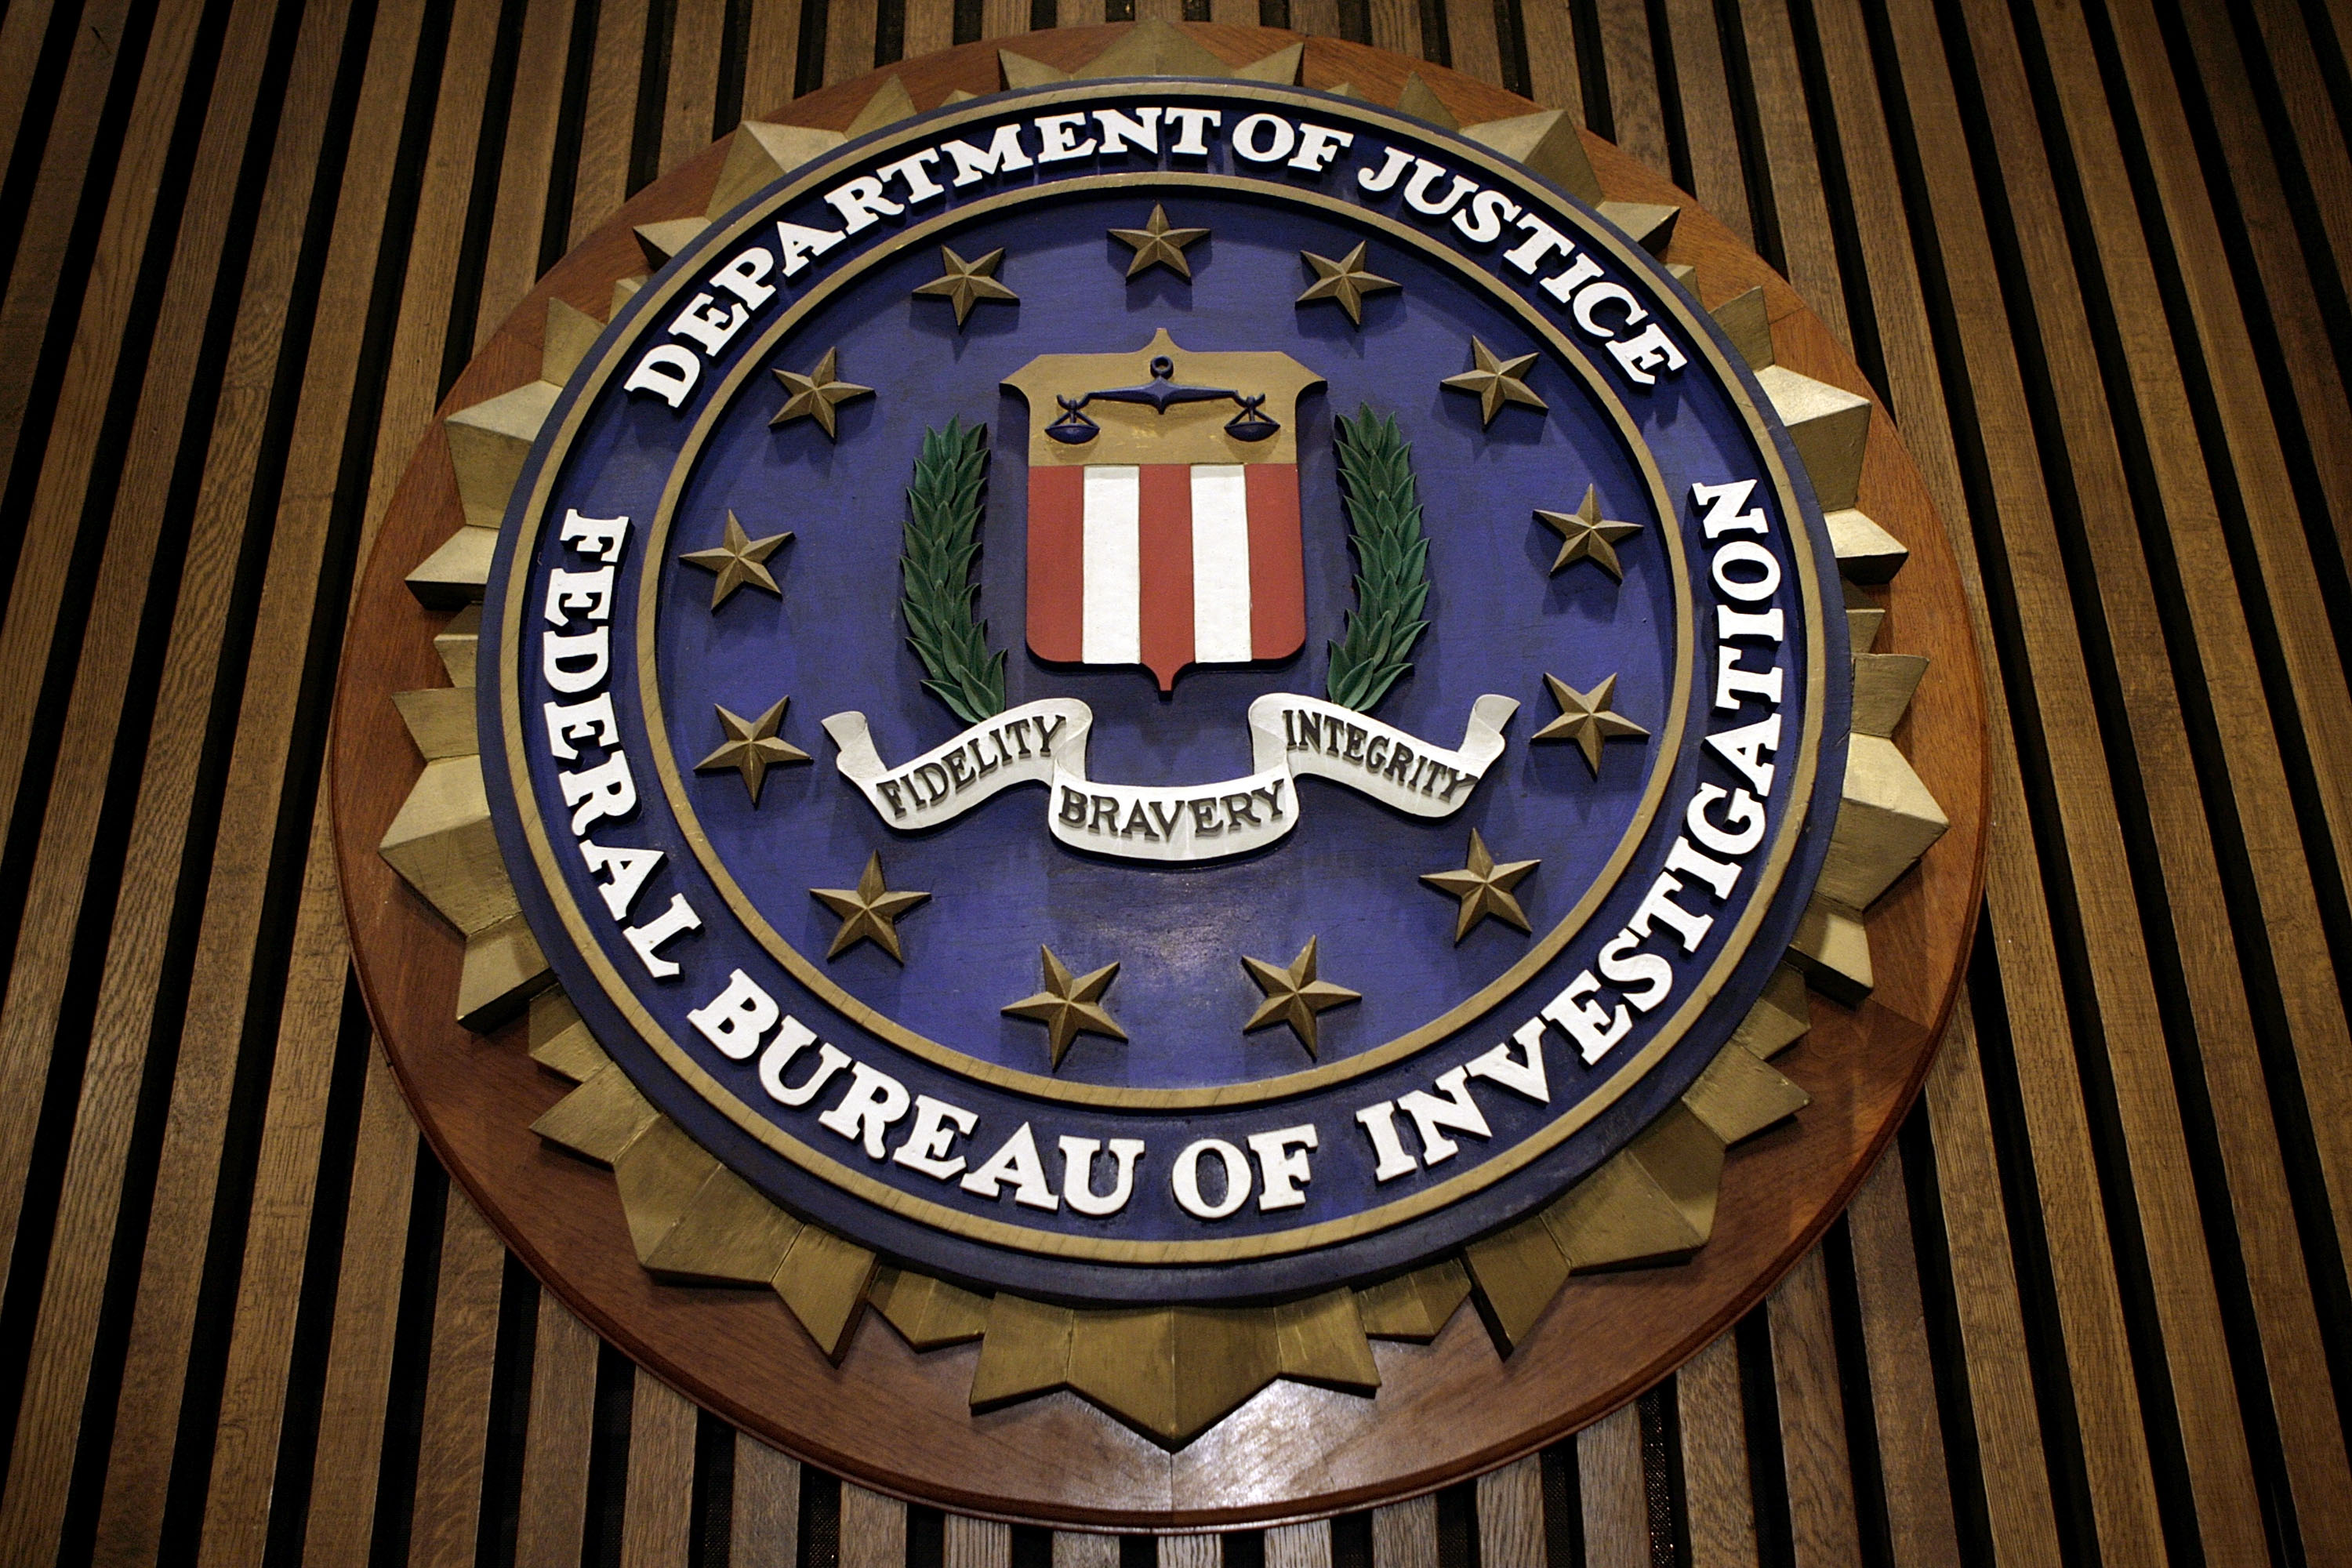 FBI records, emails, Social Security numbers exposed in massive data leak, security experts say